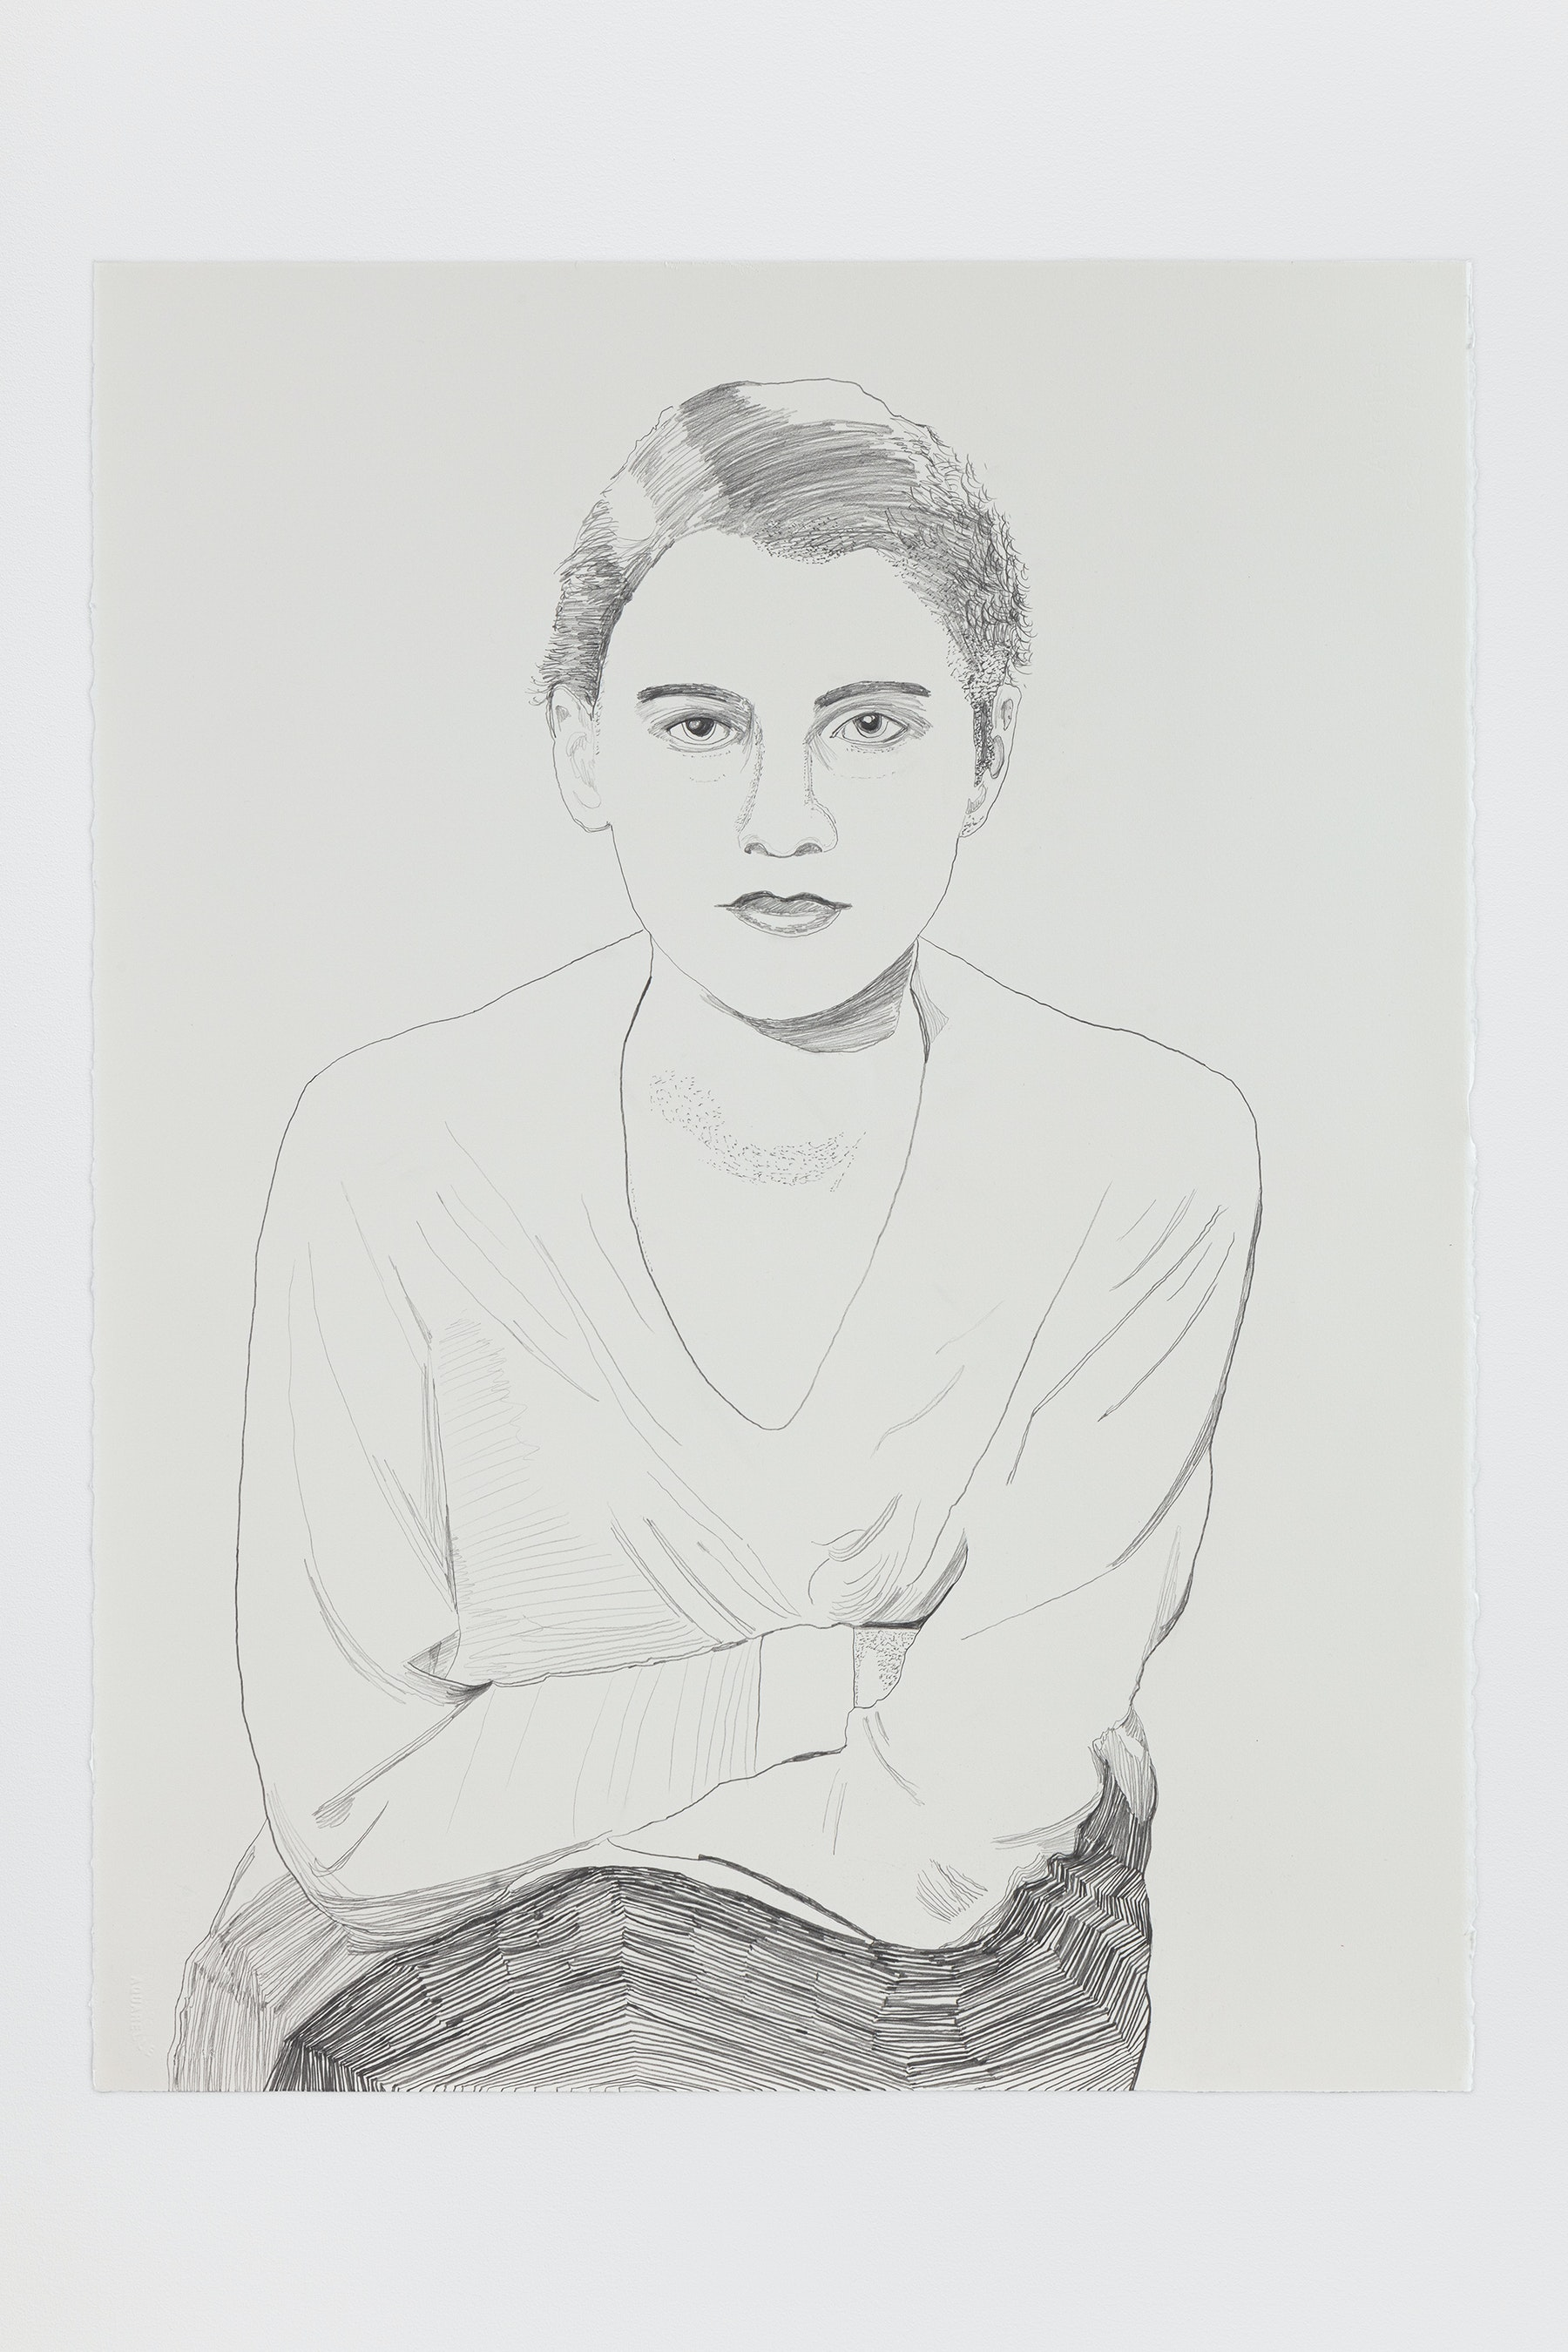 "Whitney Bedford ""Lee Miller,"" 2020 Graphite on Arches Paper 30 x 22"" [HxW] (76.2 x 55.88 cm) Inventory #BED384 Courtesy of the artist and Vielmetter Los Angeles Photo credit: Evan Bedford"